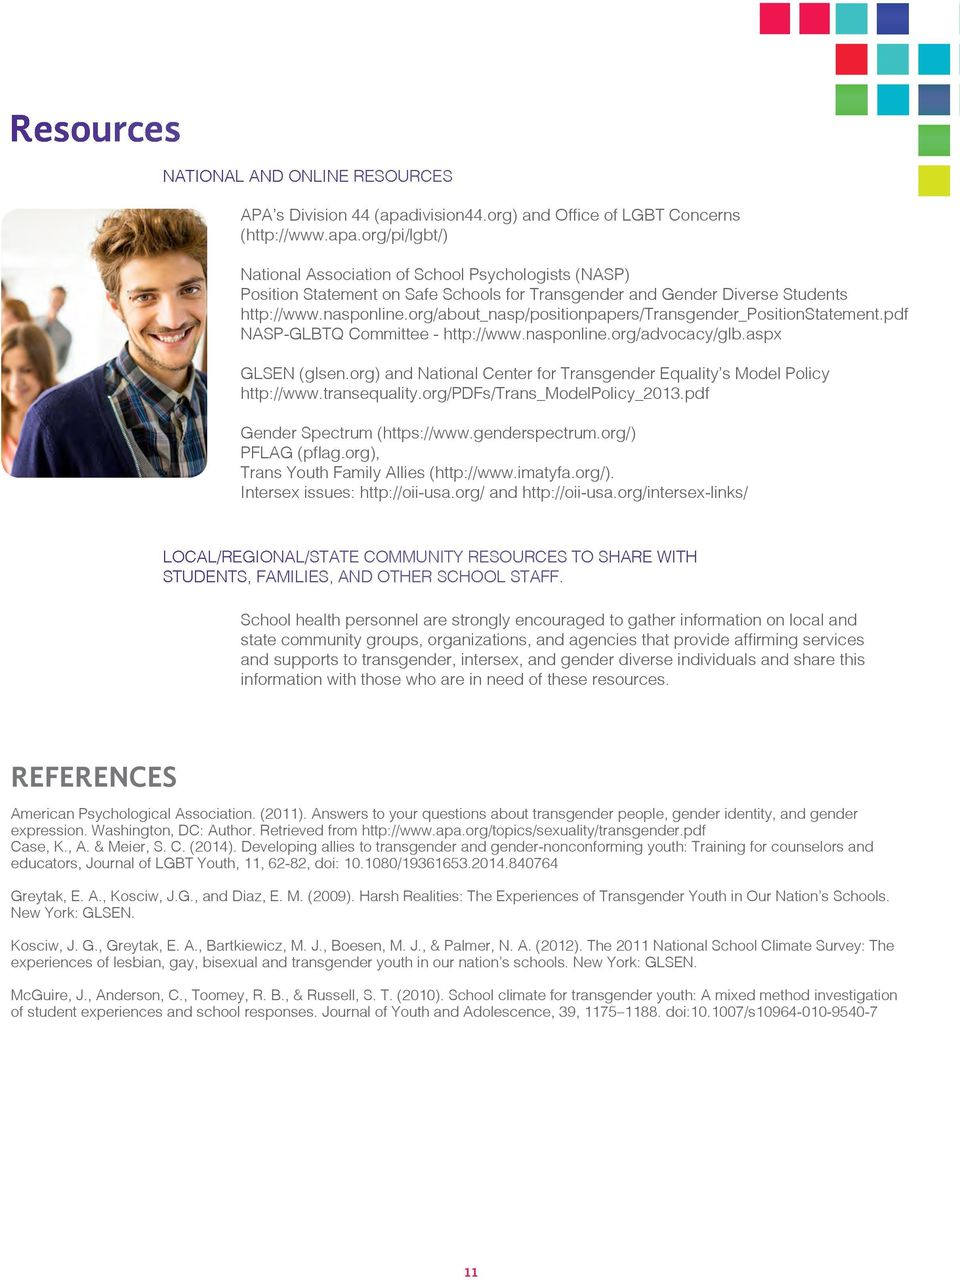 org/pi/lgbt/) National Association of School Psychologists (NASP) Position Statement on Safe Schools for Transgender and Gender Diverse Students http://www.nasponline.